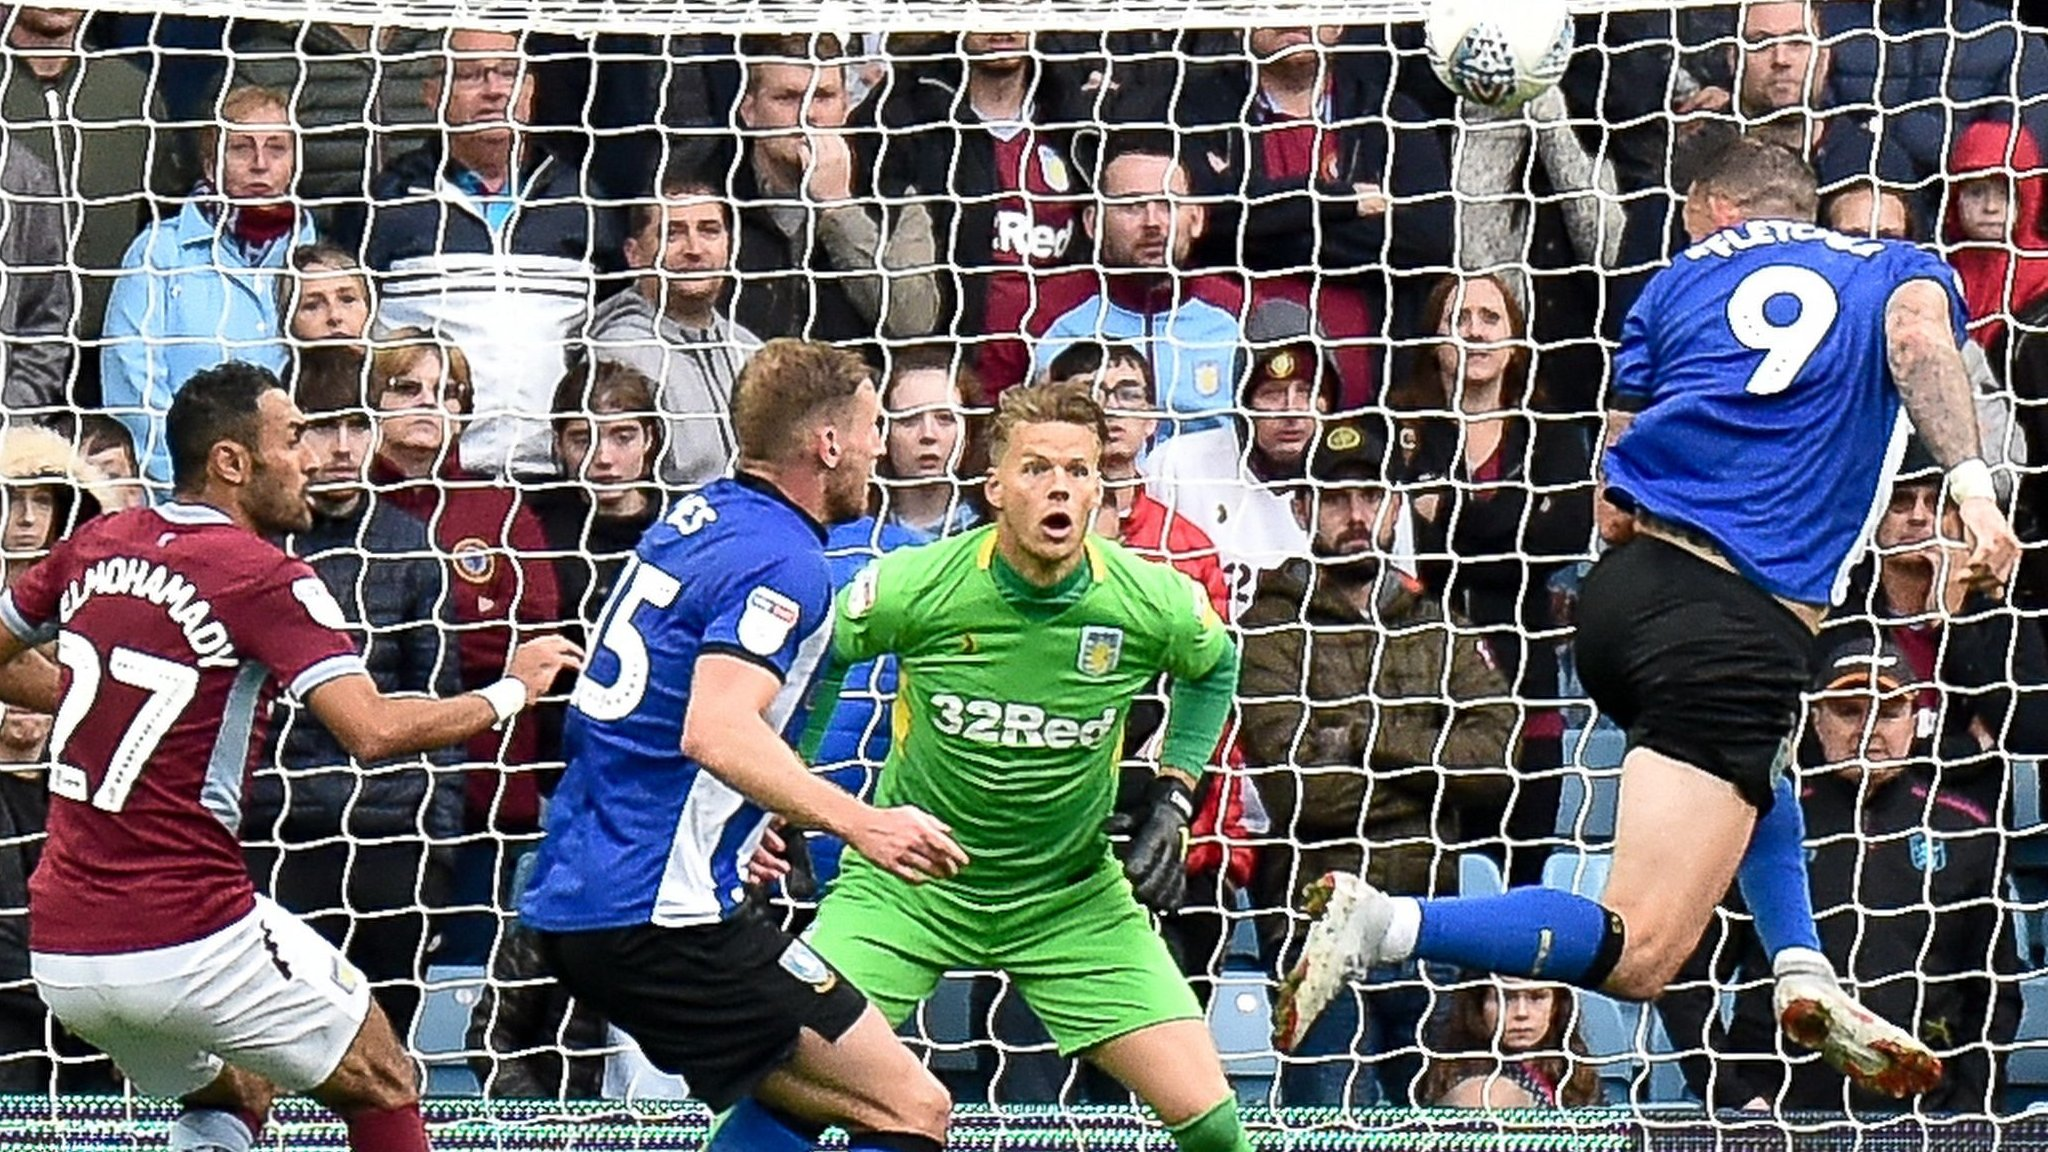 'I'm never going to walk away' - Bruce defiant after Villa lose to Sheff Wed